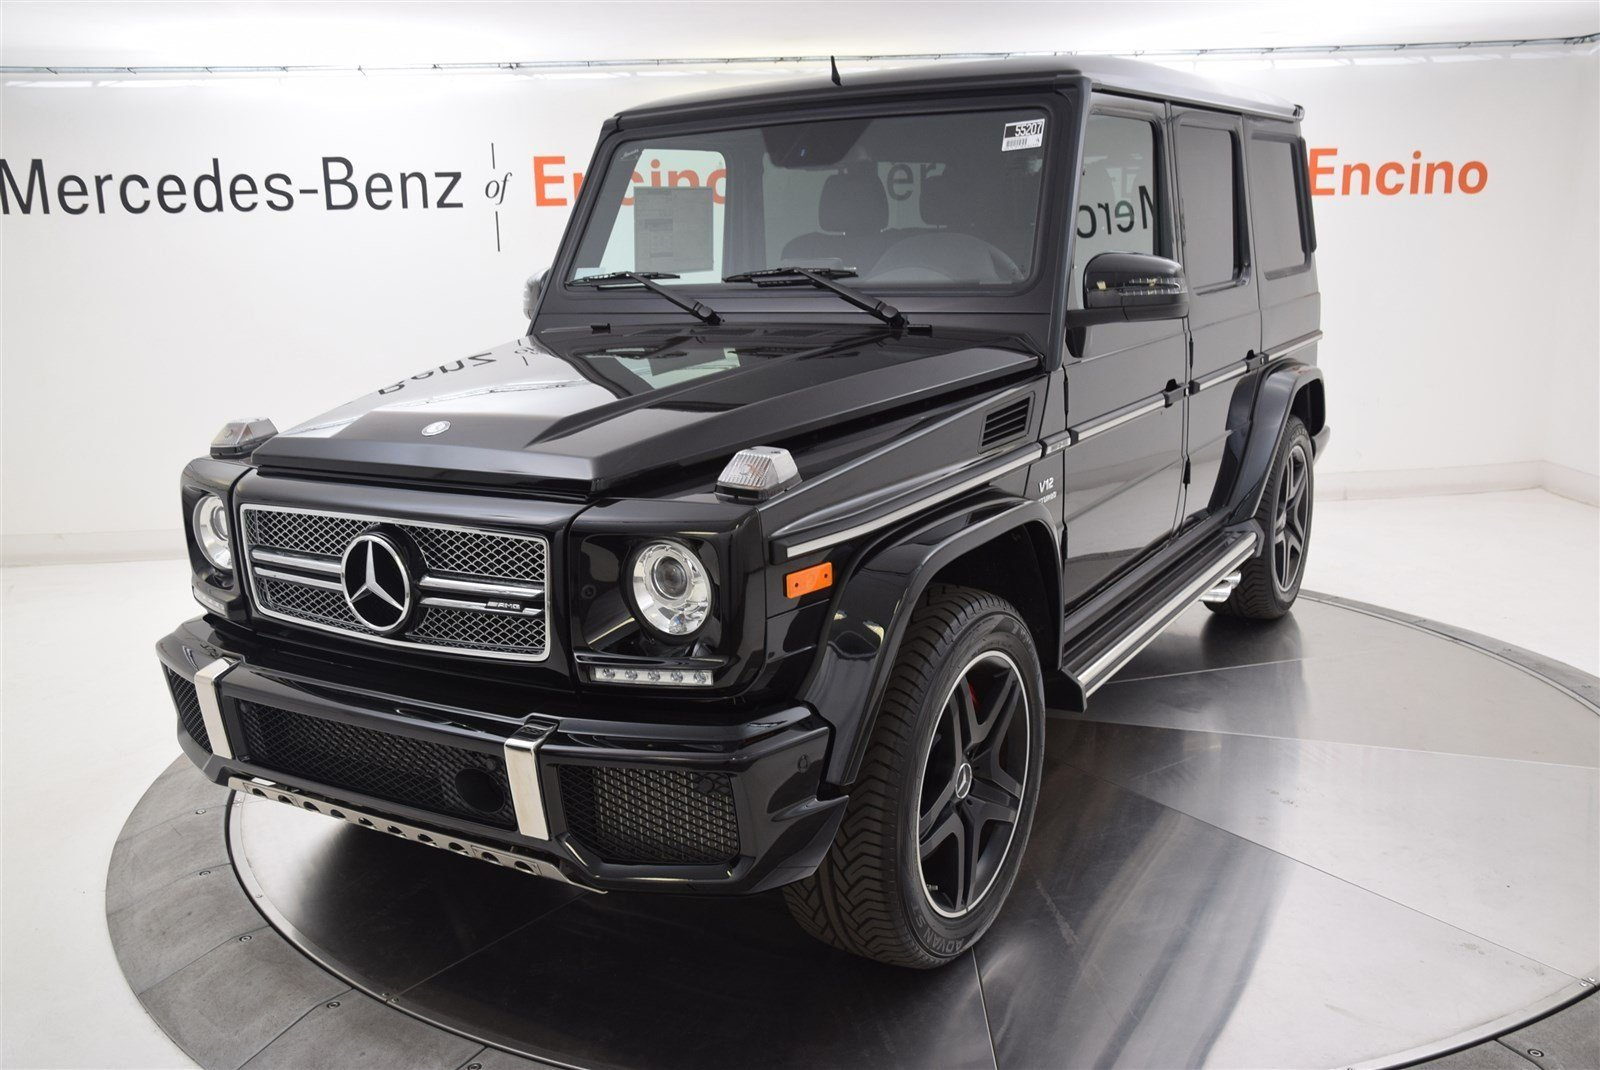 new 2016 mercedes benz g class g 65 amg suv suv in encino 55207 mercedes benz of encino. Black Bedroom Furniture Sets. Home Design Ideas